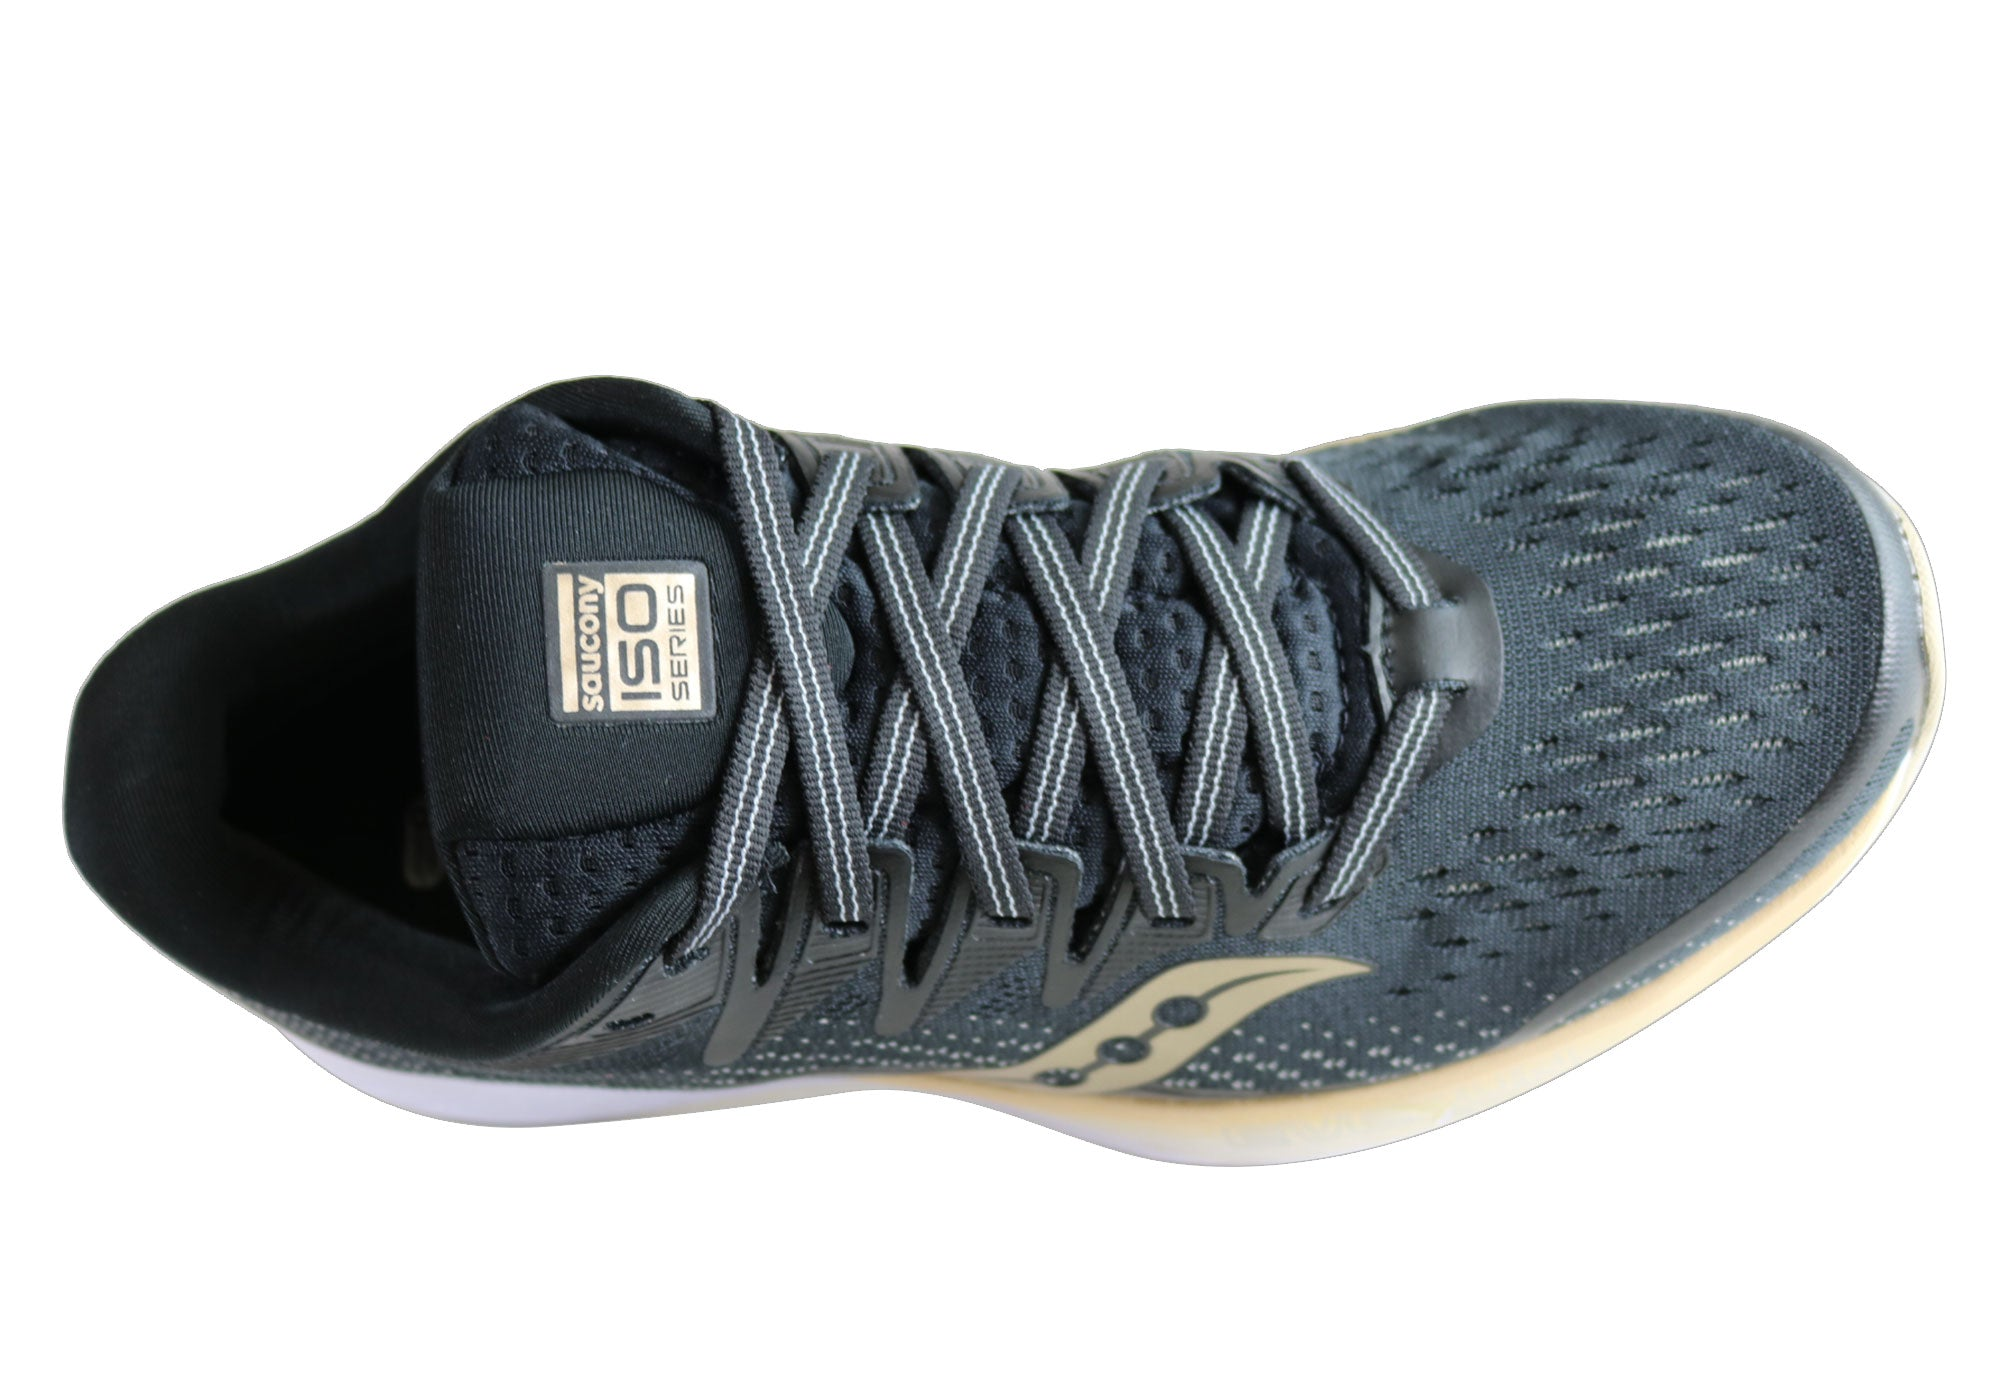 a5db8dd3 Details about Saucony Womens Ride Iso 2 Comfortable Athletic Running Shoes  - ShopShoesAU